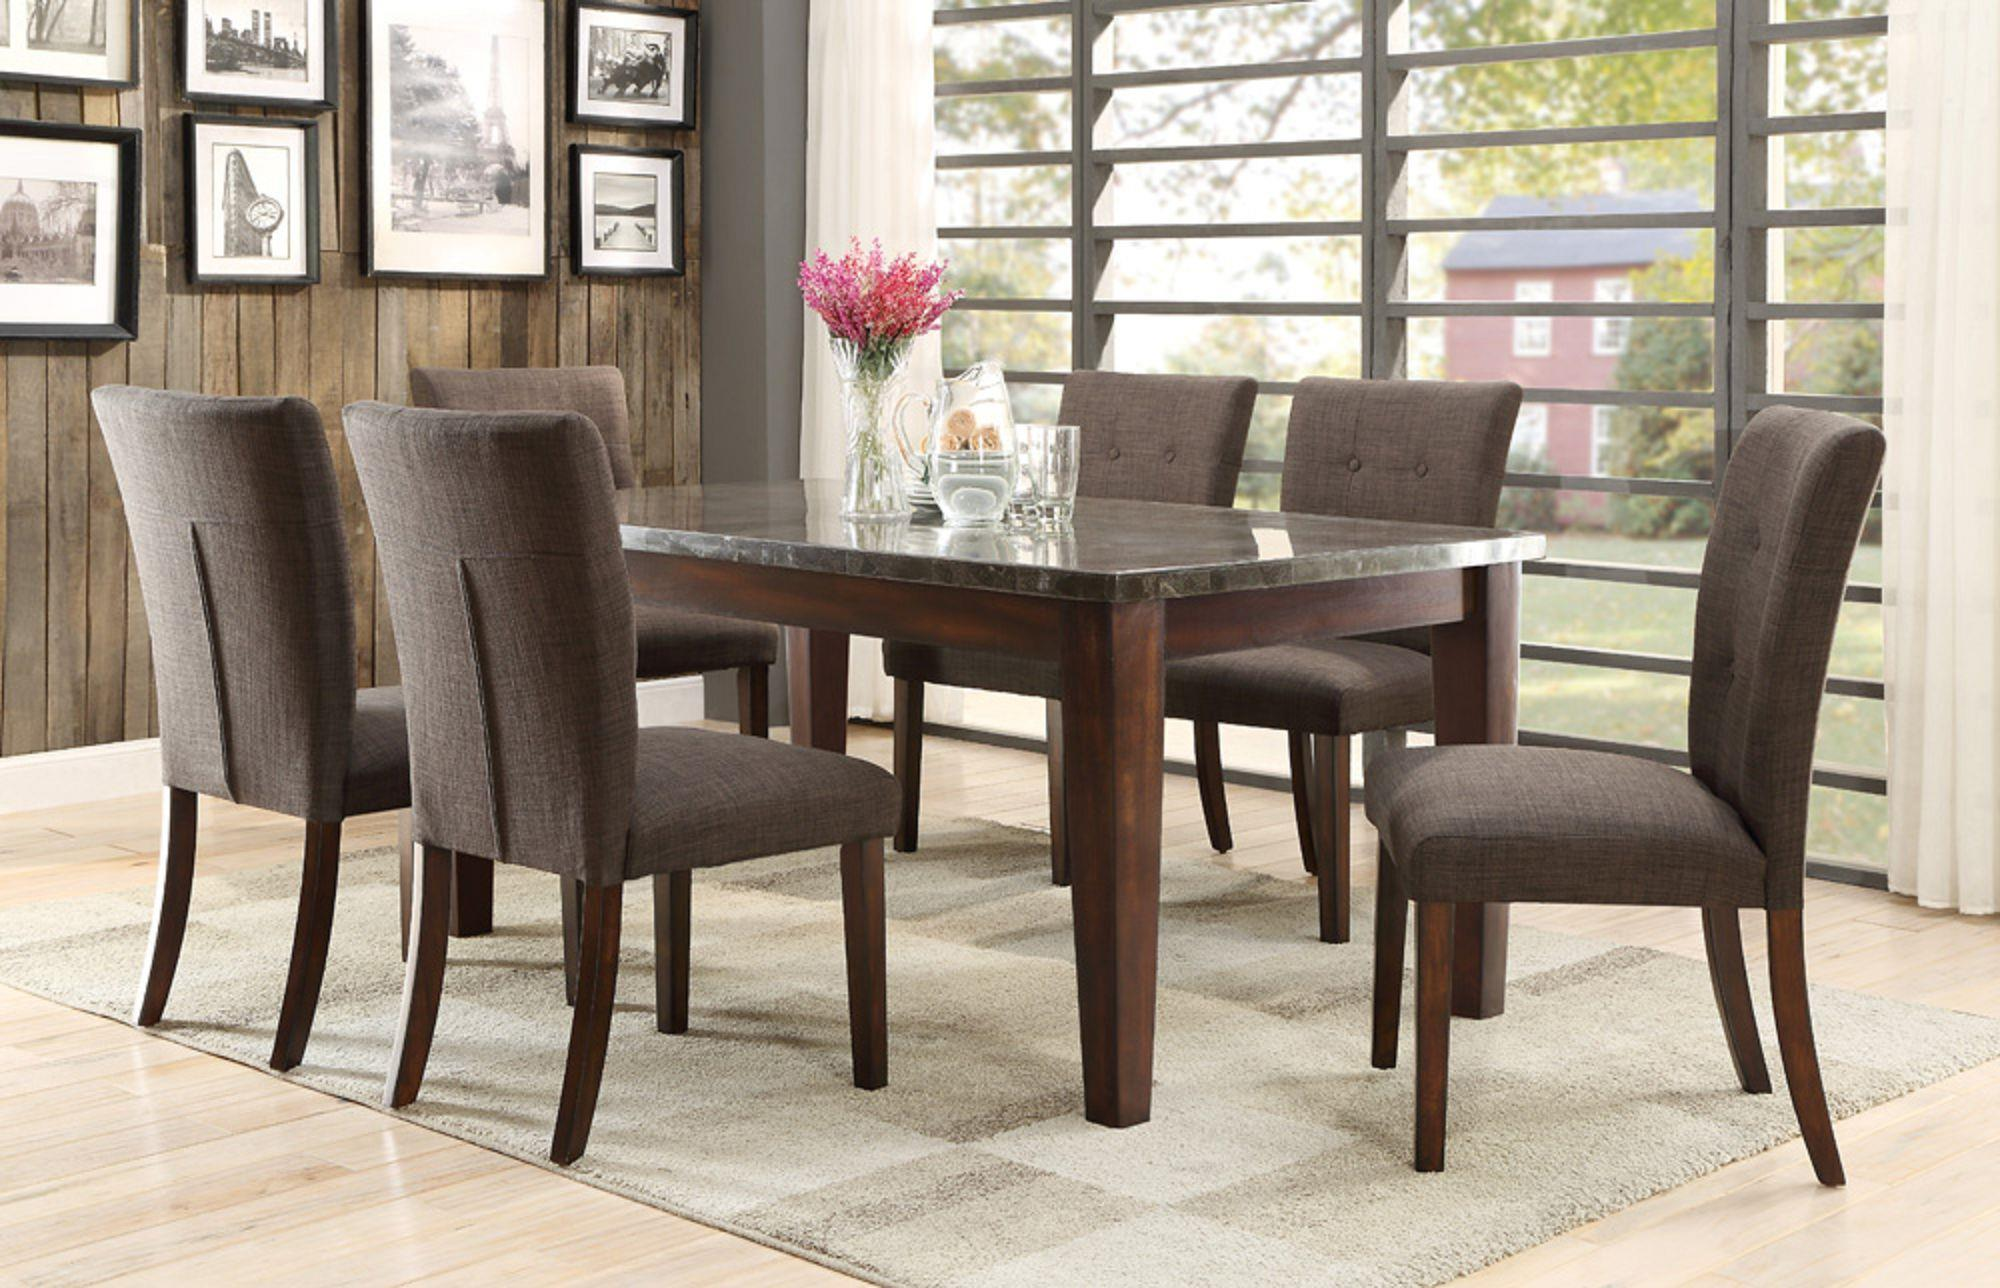 Homelegance 5281 Dining Table with Bluestone Top - Wayside ...